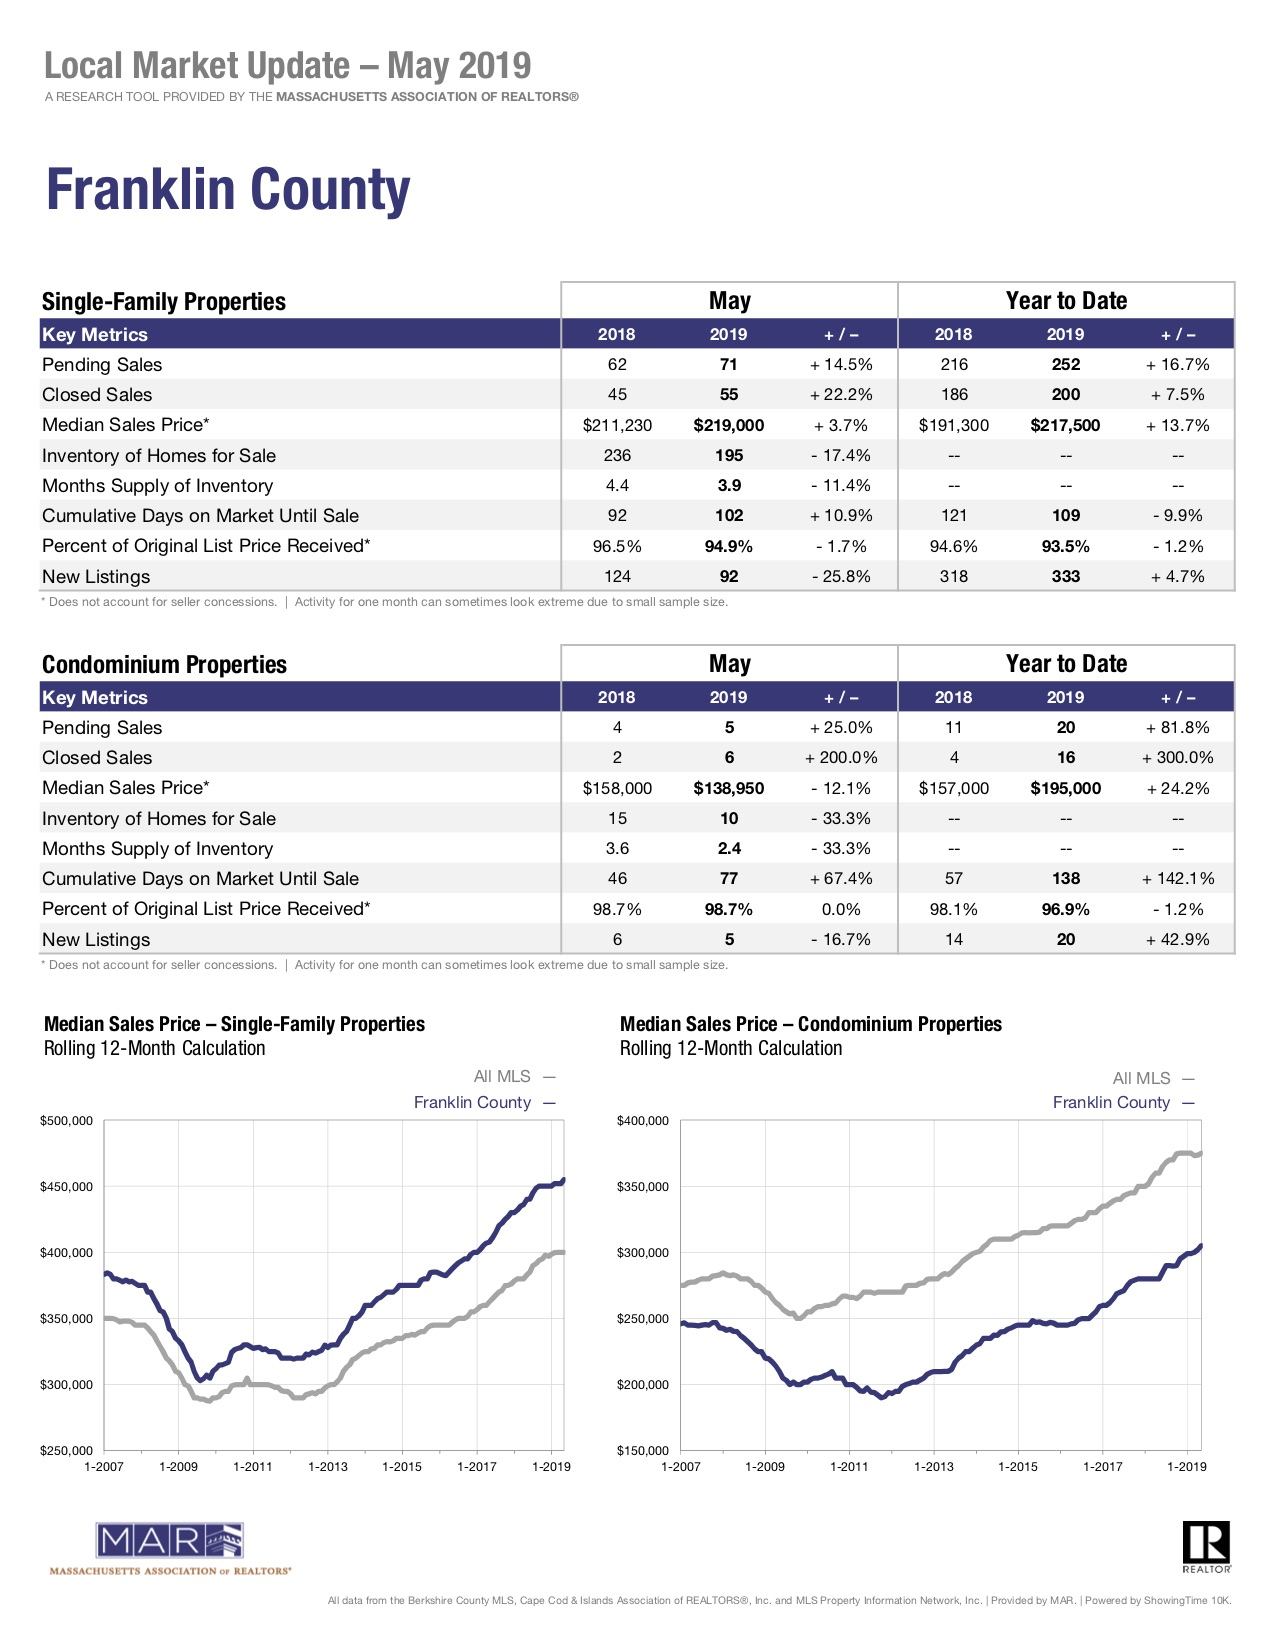 franklin county local market update sales report